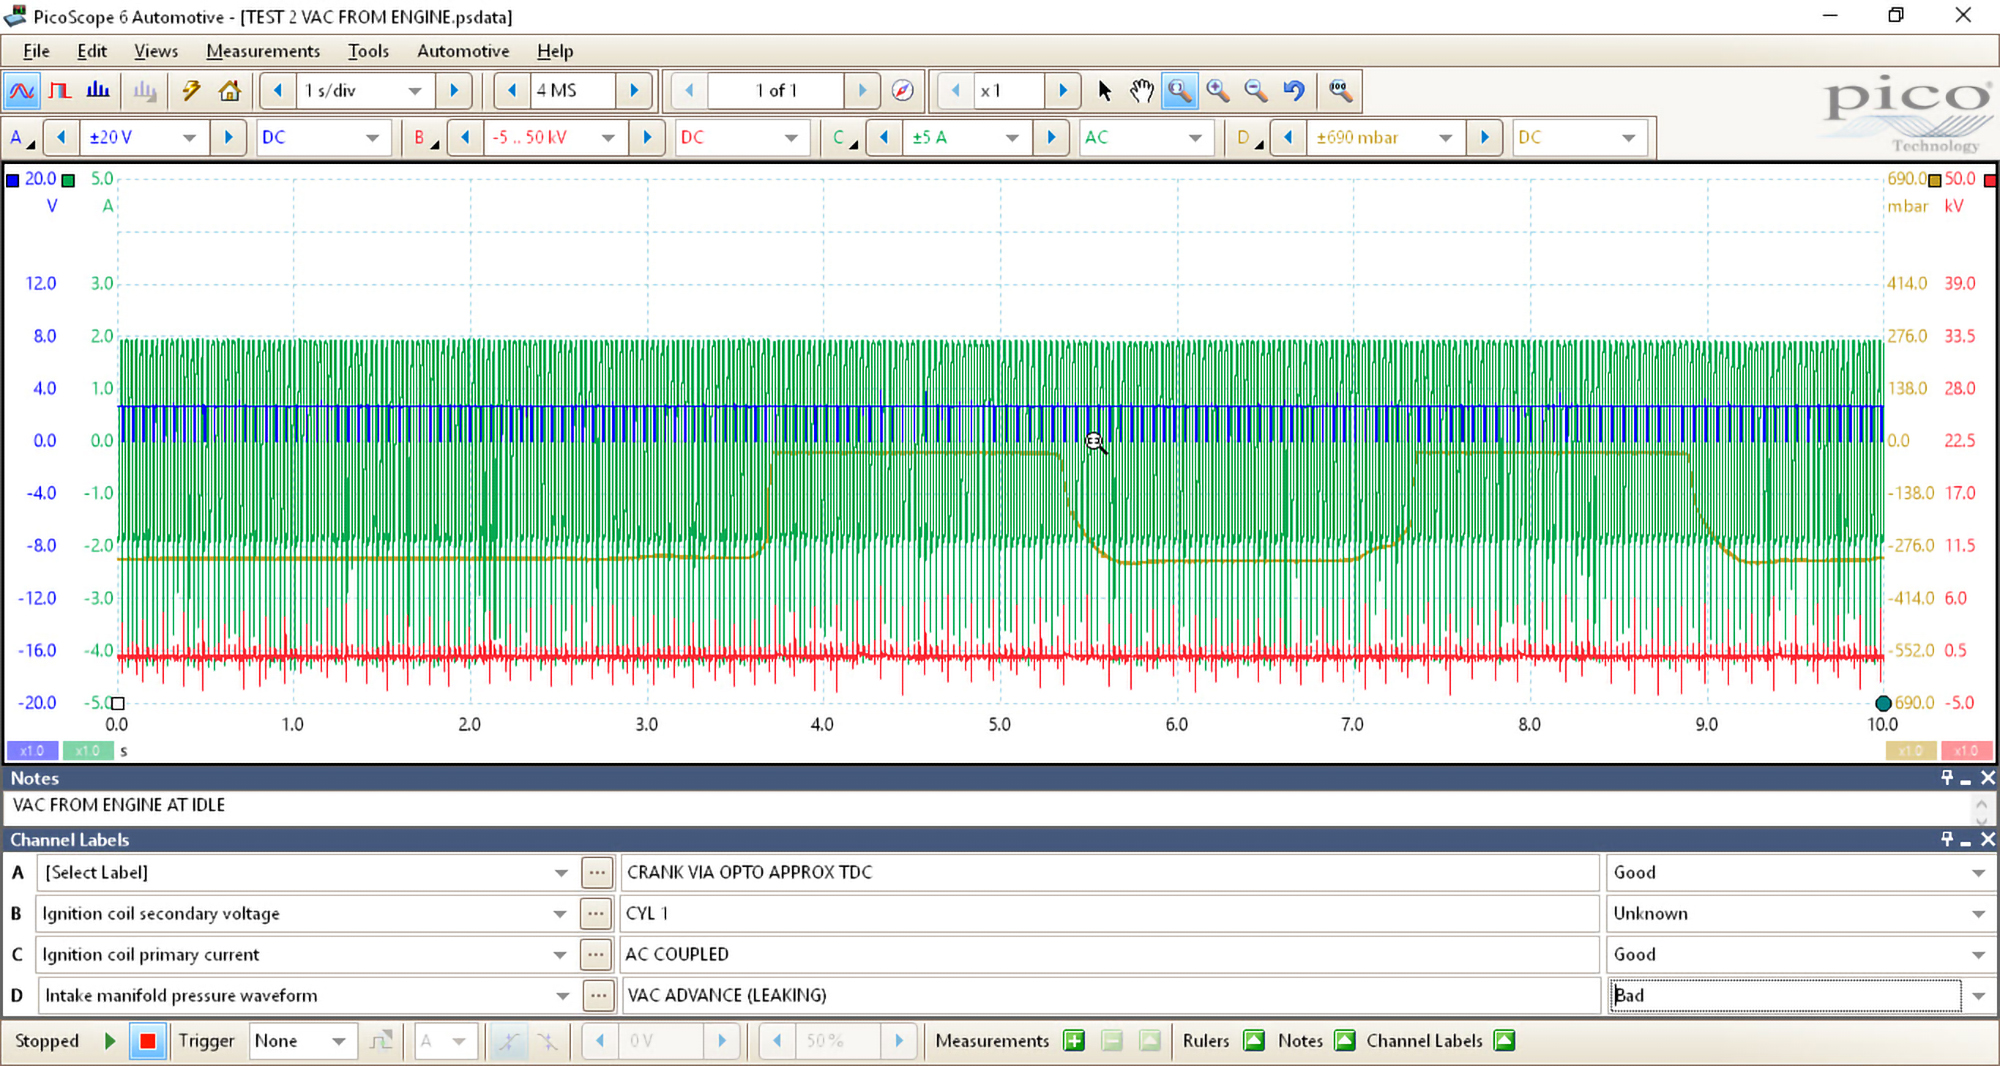 A screenshot of PicoScope 6 Automotive showing all the raw data captured.